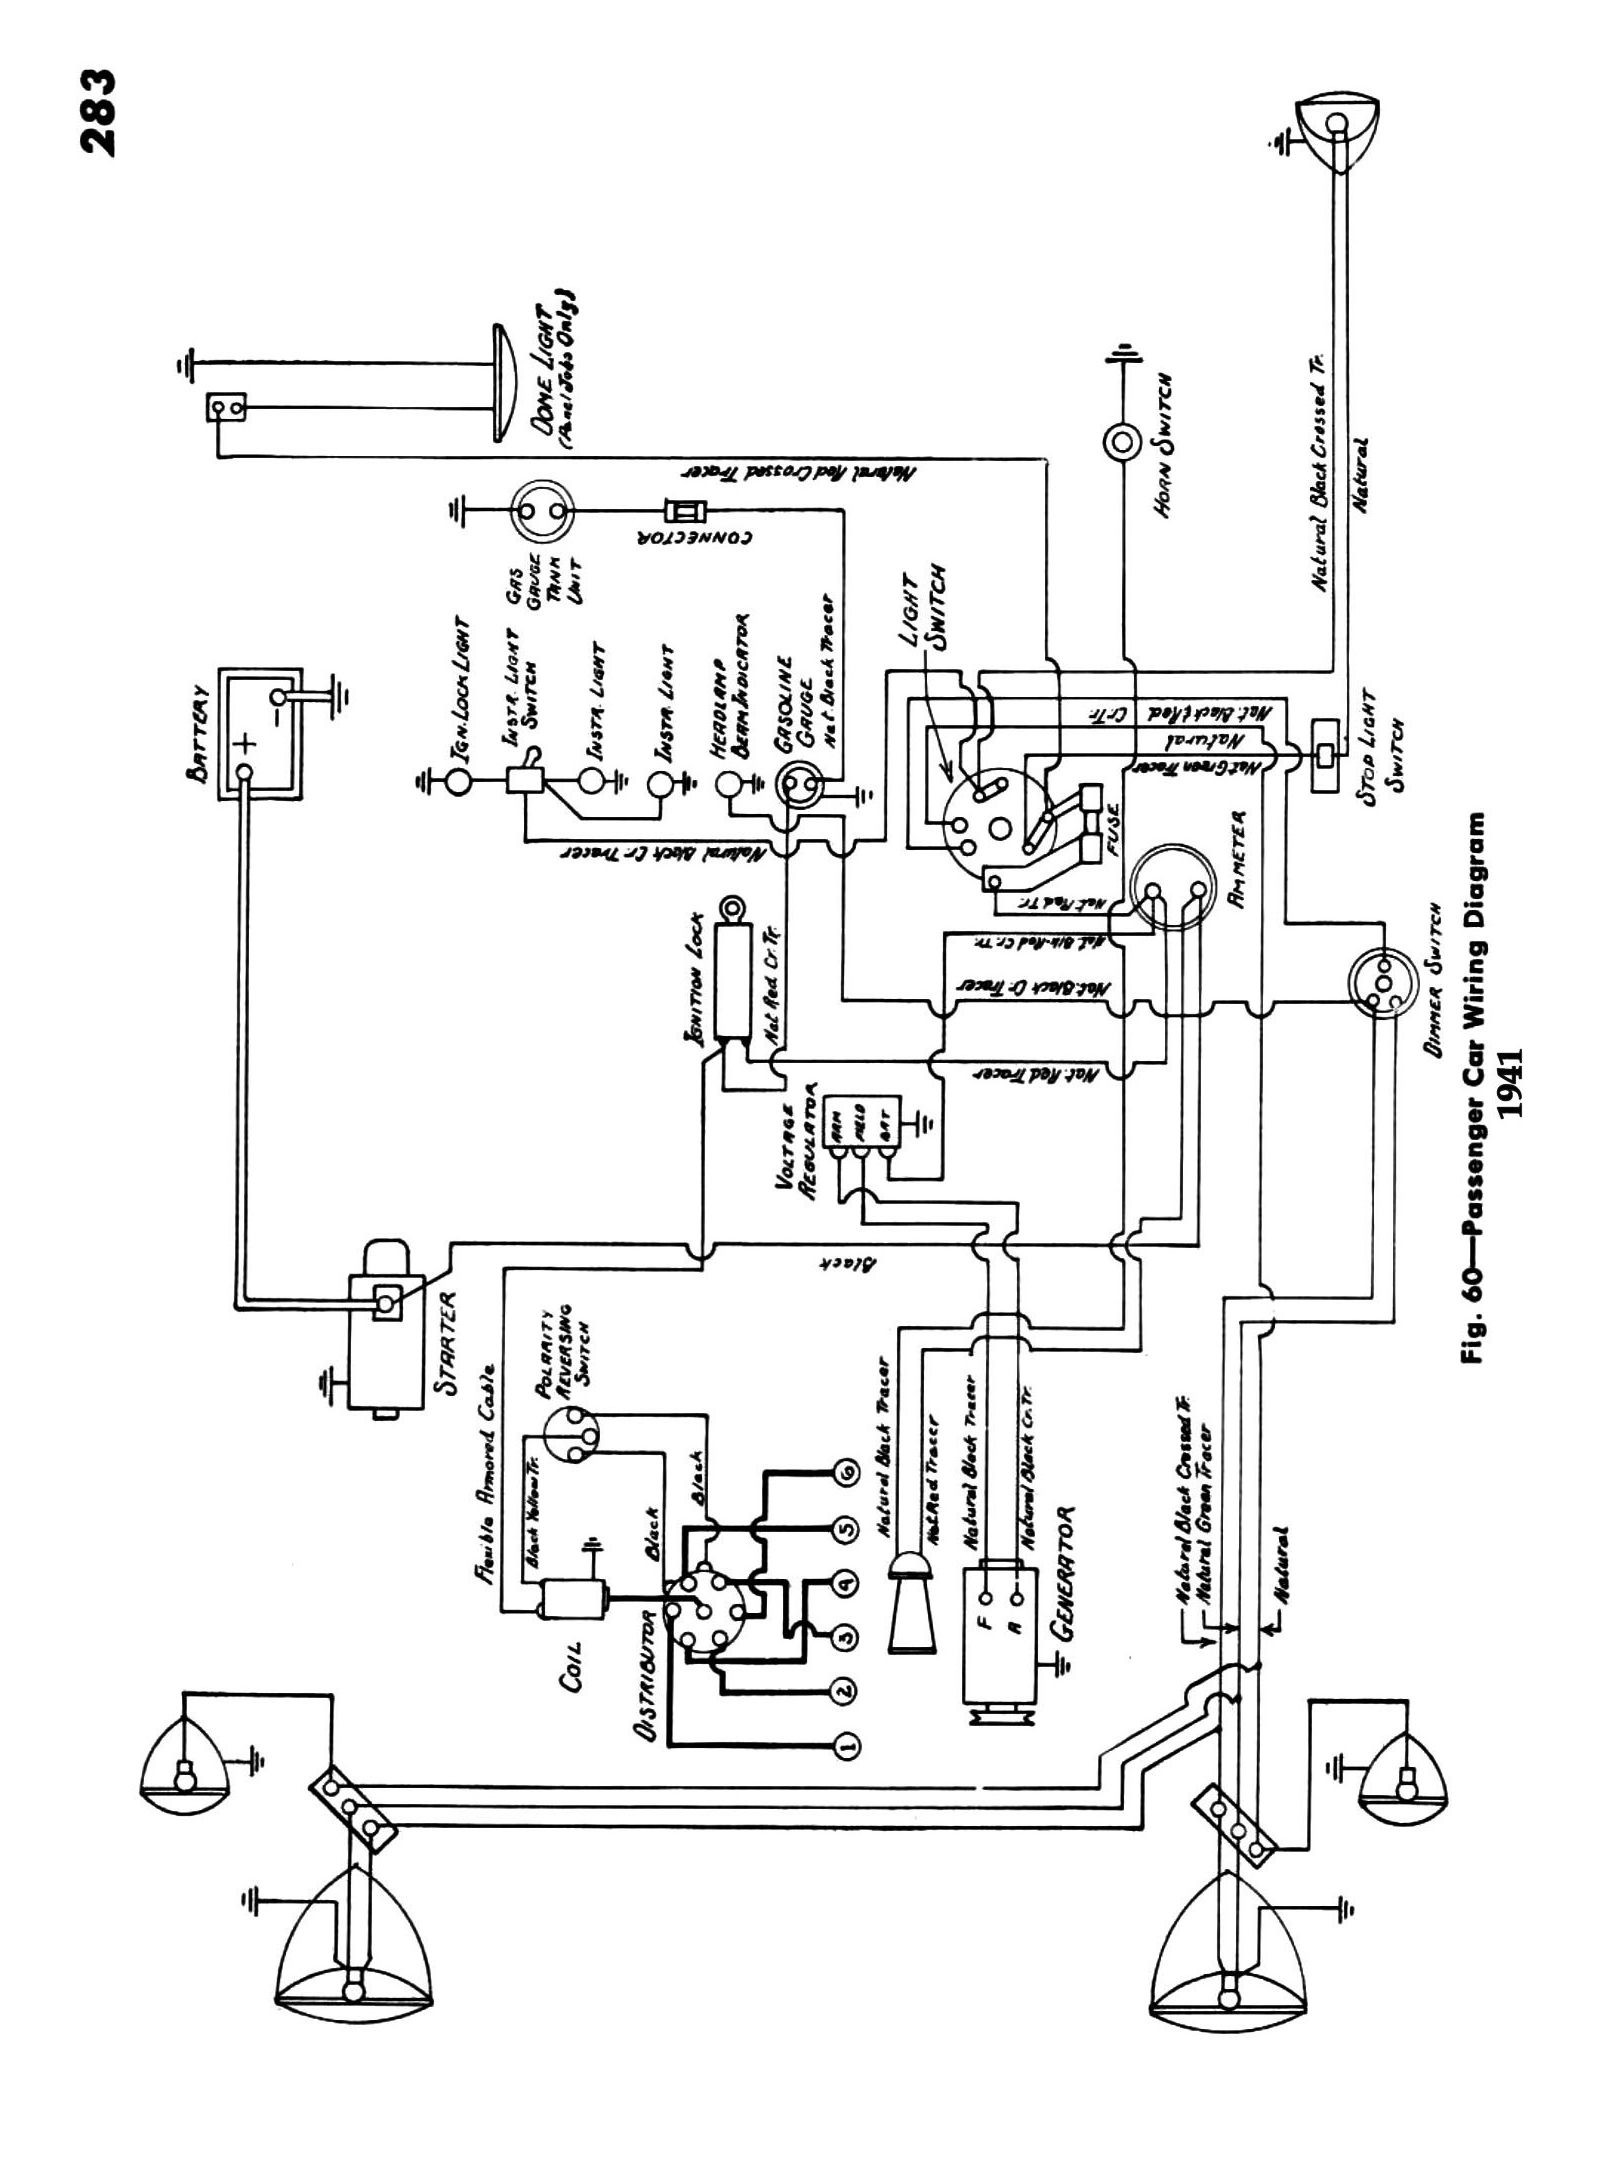 semi truck engine diagram volvo 850 power window wiring diagram rh  detoxicrecenze com